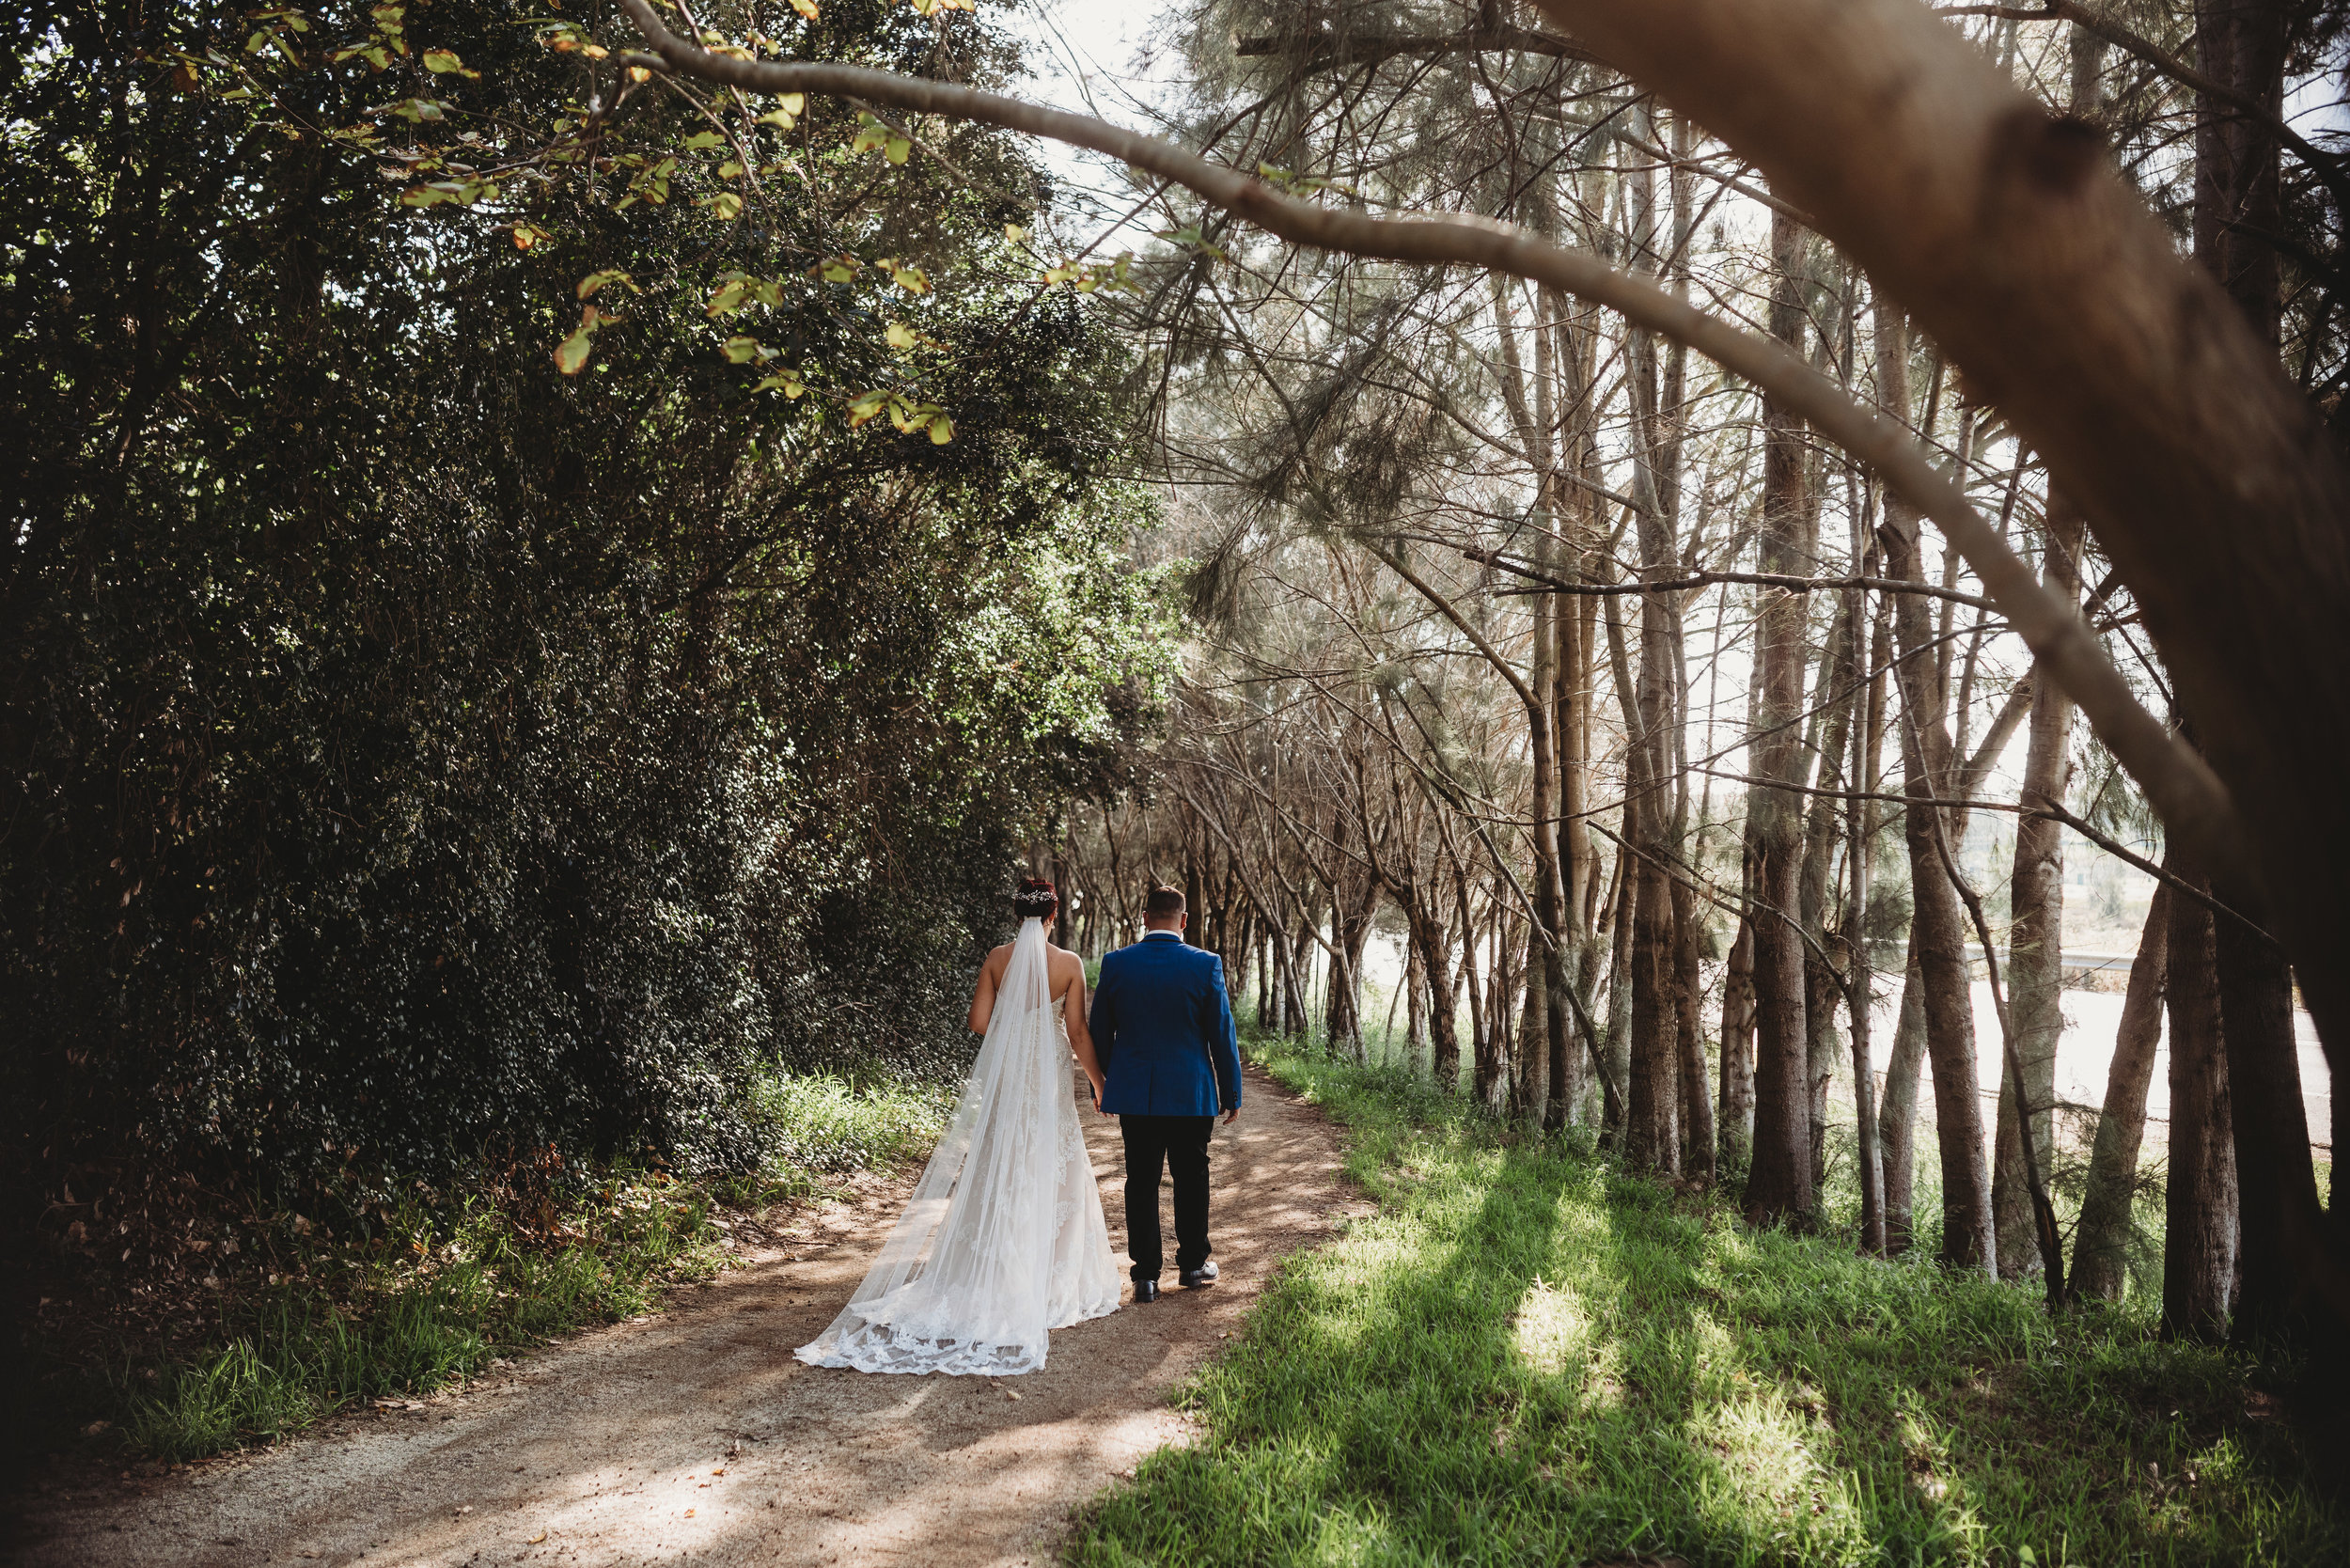 Alyssa & Aaron - Mecure Resort, Hunter Valley Wedding    6th April 2019